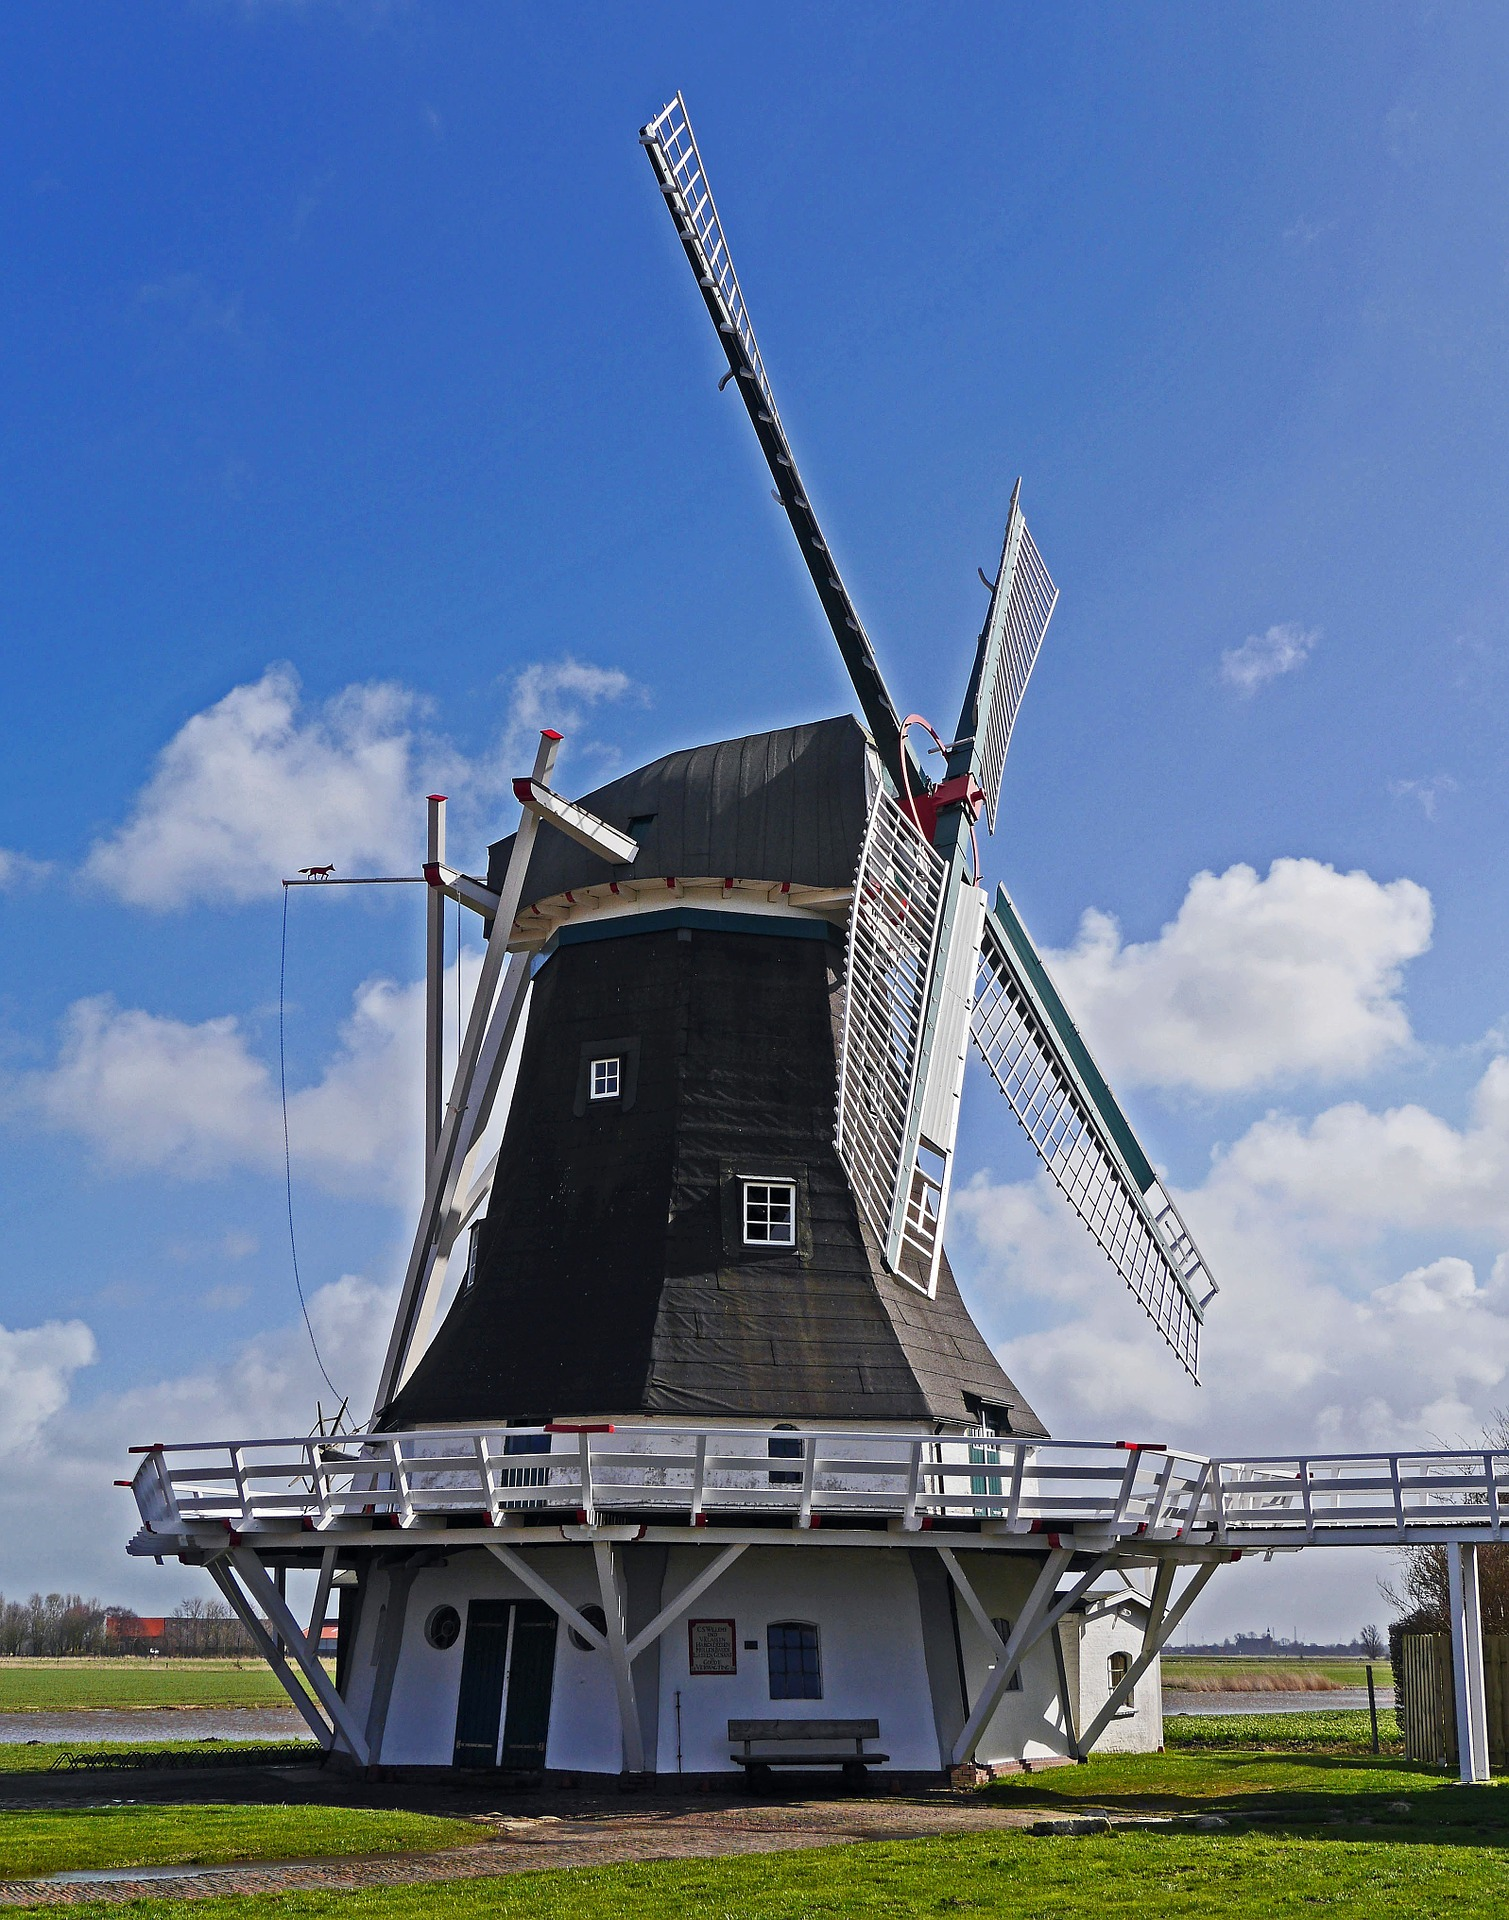 Mühle, Wind, Ostfriesland, Himmel, Wolken - screen HD Wallpaper - Prof.-falken.com